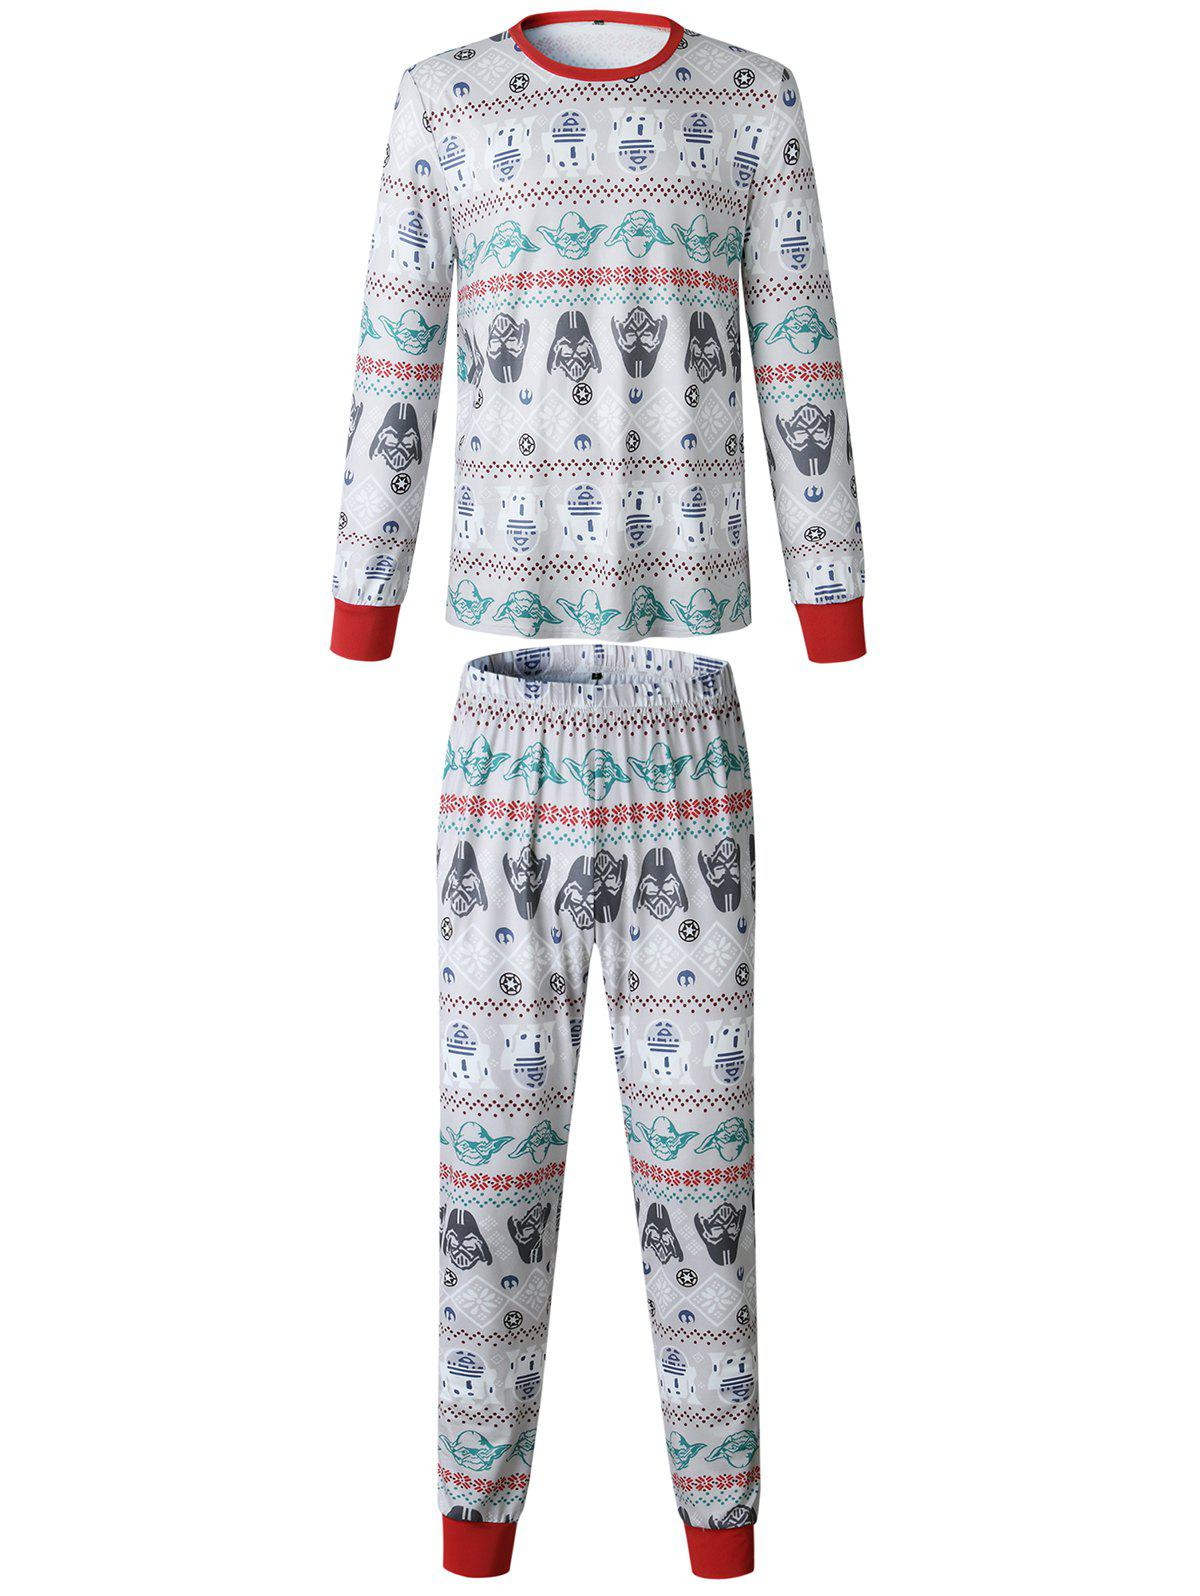 Unique Christmas  Family Pajama Long Sleeves Casual  Print  Sets Parent-Child Home Suit Pyjamas